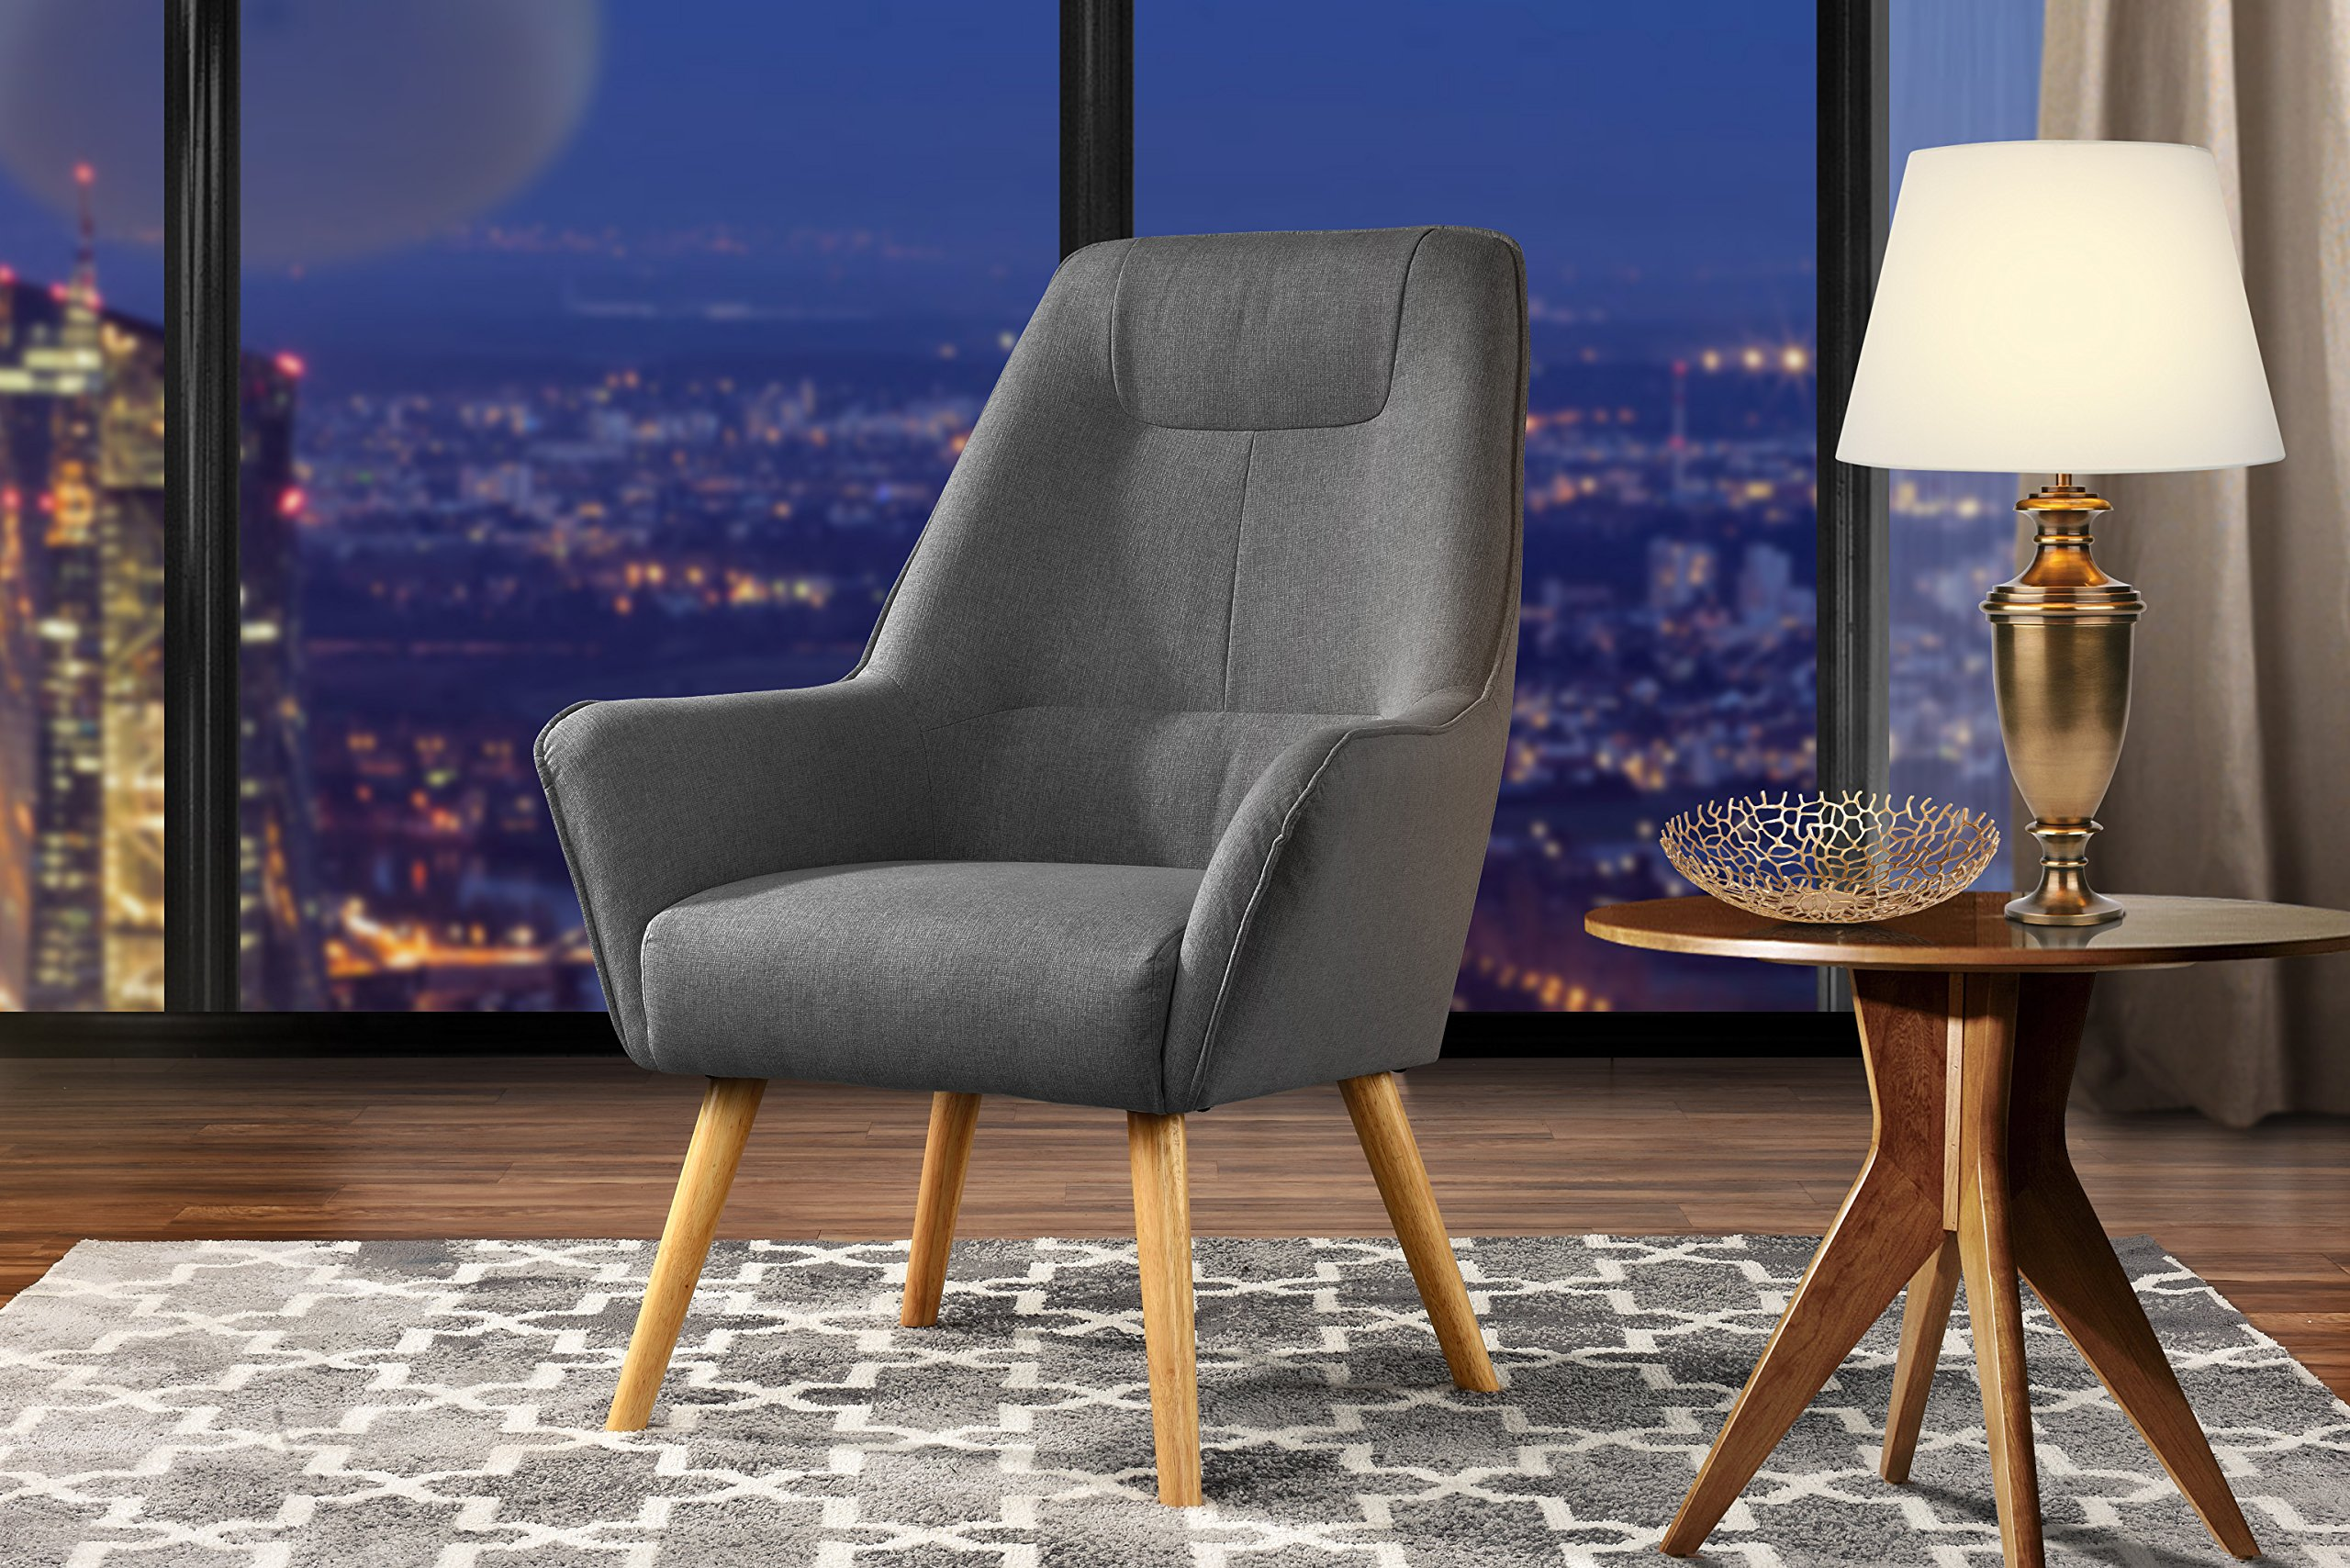 Divano Roma Furniture Accent Living Room Upholstered Linen Arm Chairs With Natural Wooden Legs Dark Grey Buy Online In India Divano Roma Furniture Products In India See Prices Reviews